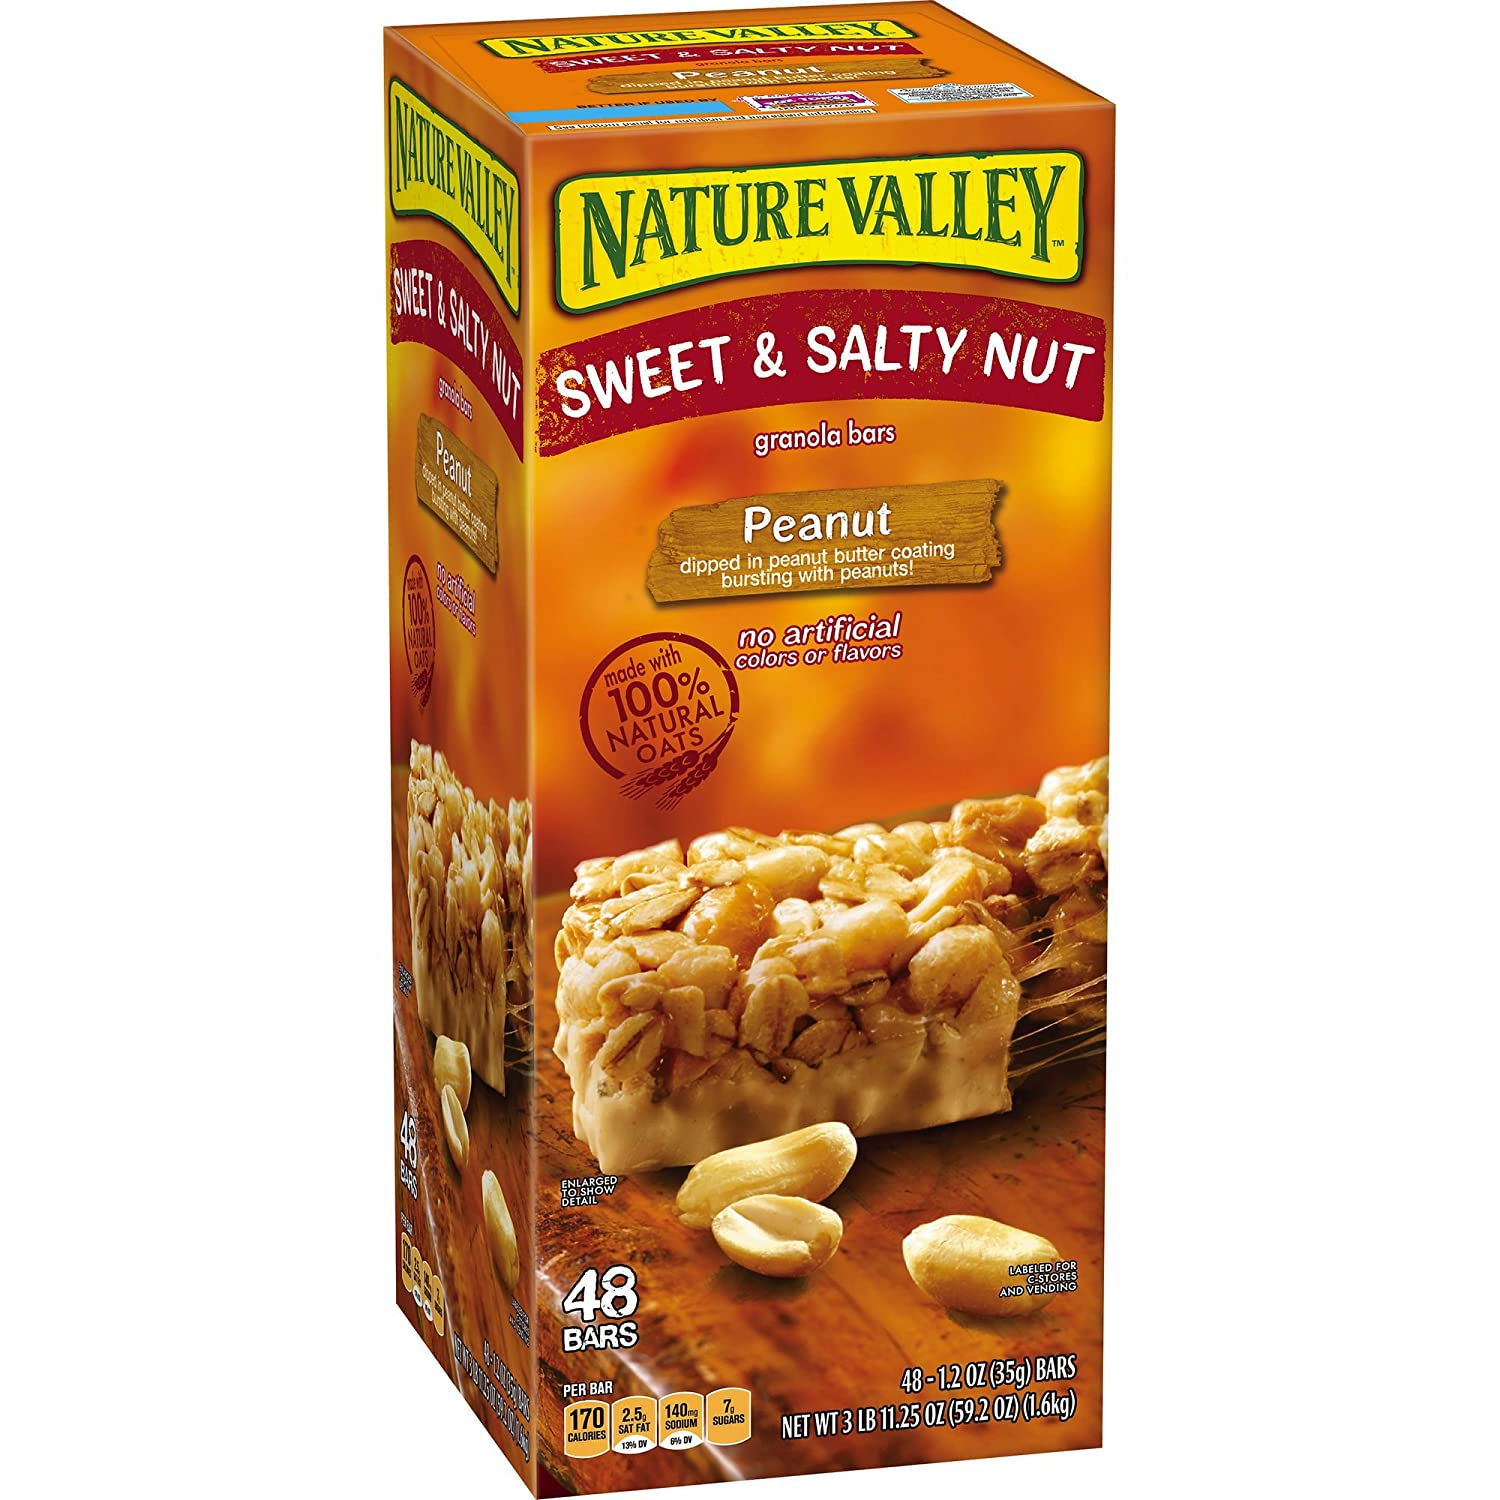 Nature Valley Sweet & Salty Peanut Granola Bars, 48 ct. (pack of 2)